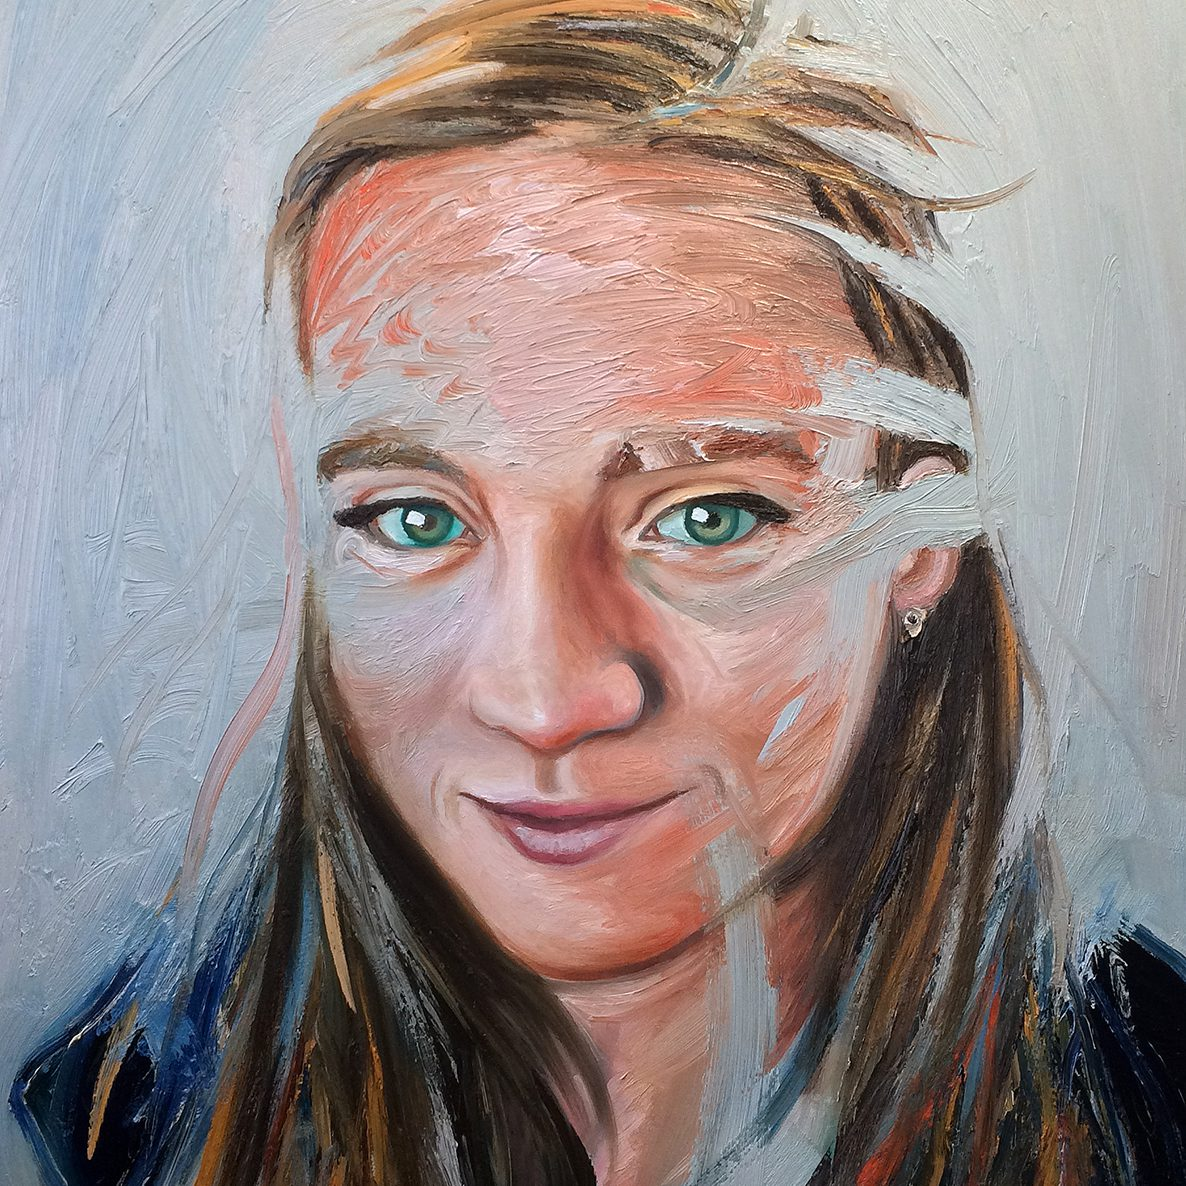 Madeline | 60 x 90 cm | Oil on Linen | 2017